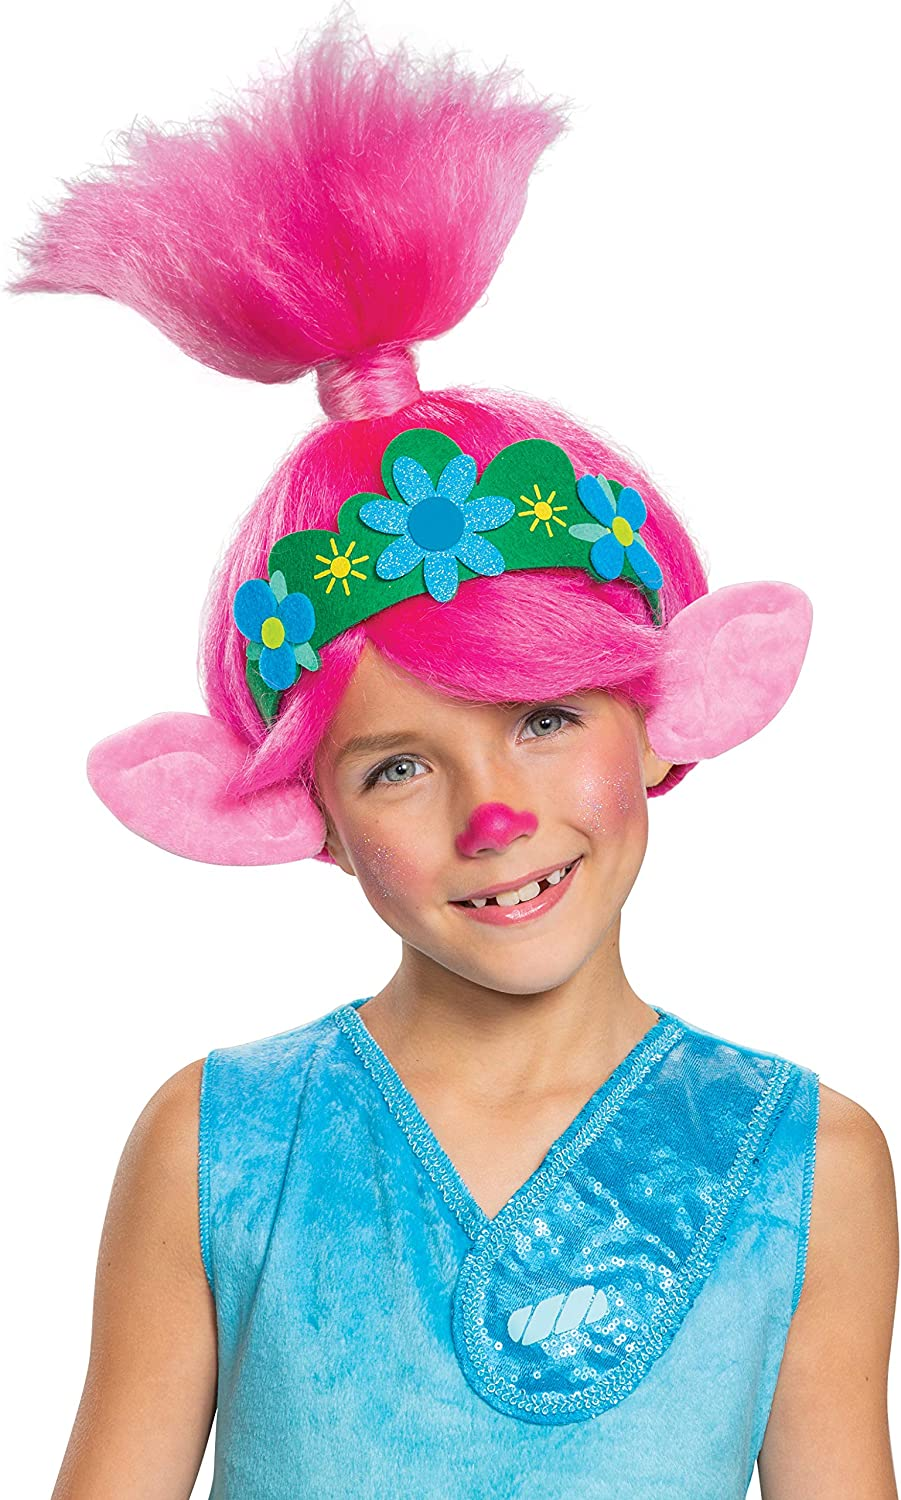 Disguise Trolls World Tour Poppy Wig, Trolls World Tour Child Costume Accessory, Pink Kids Size Movie Character Dress Up Wigs : Clothing, Shoes & Jewelry